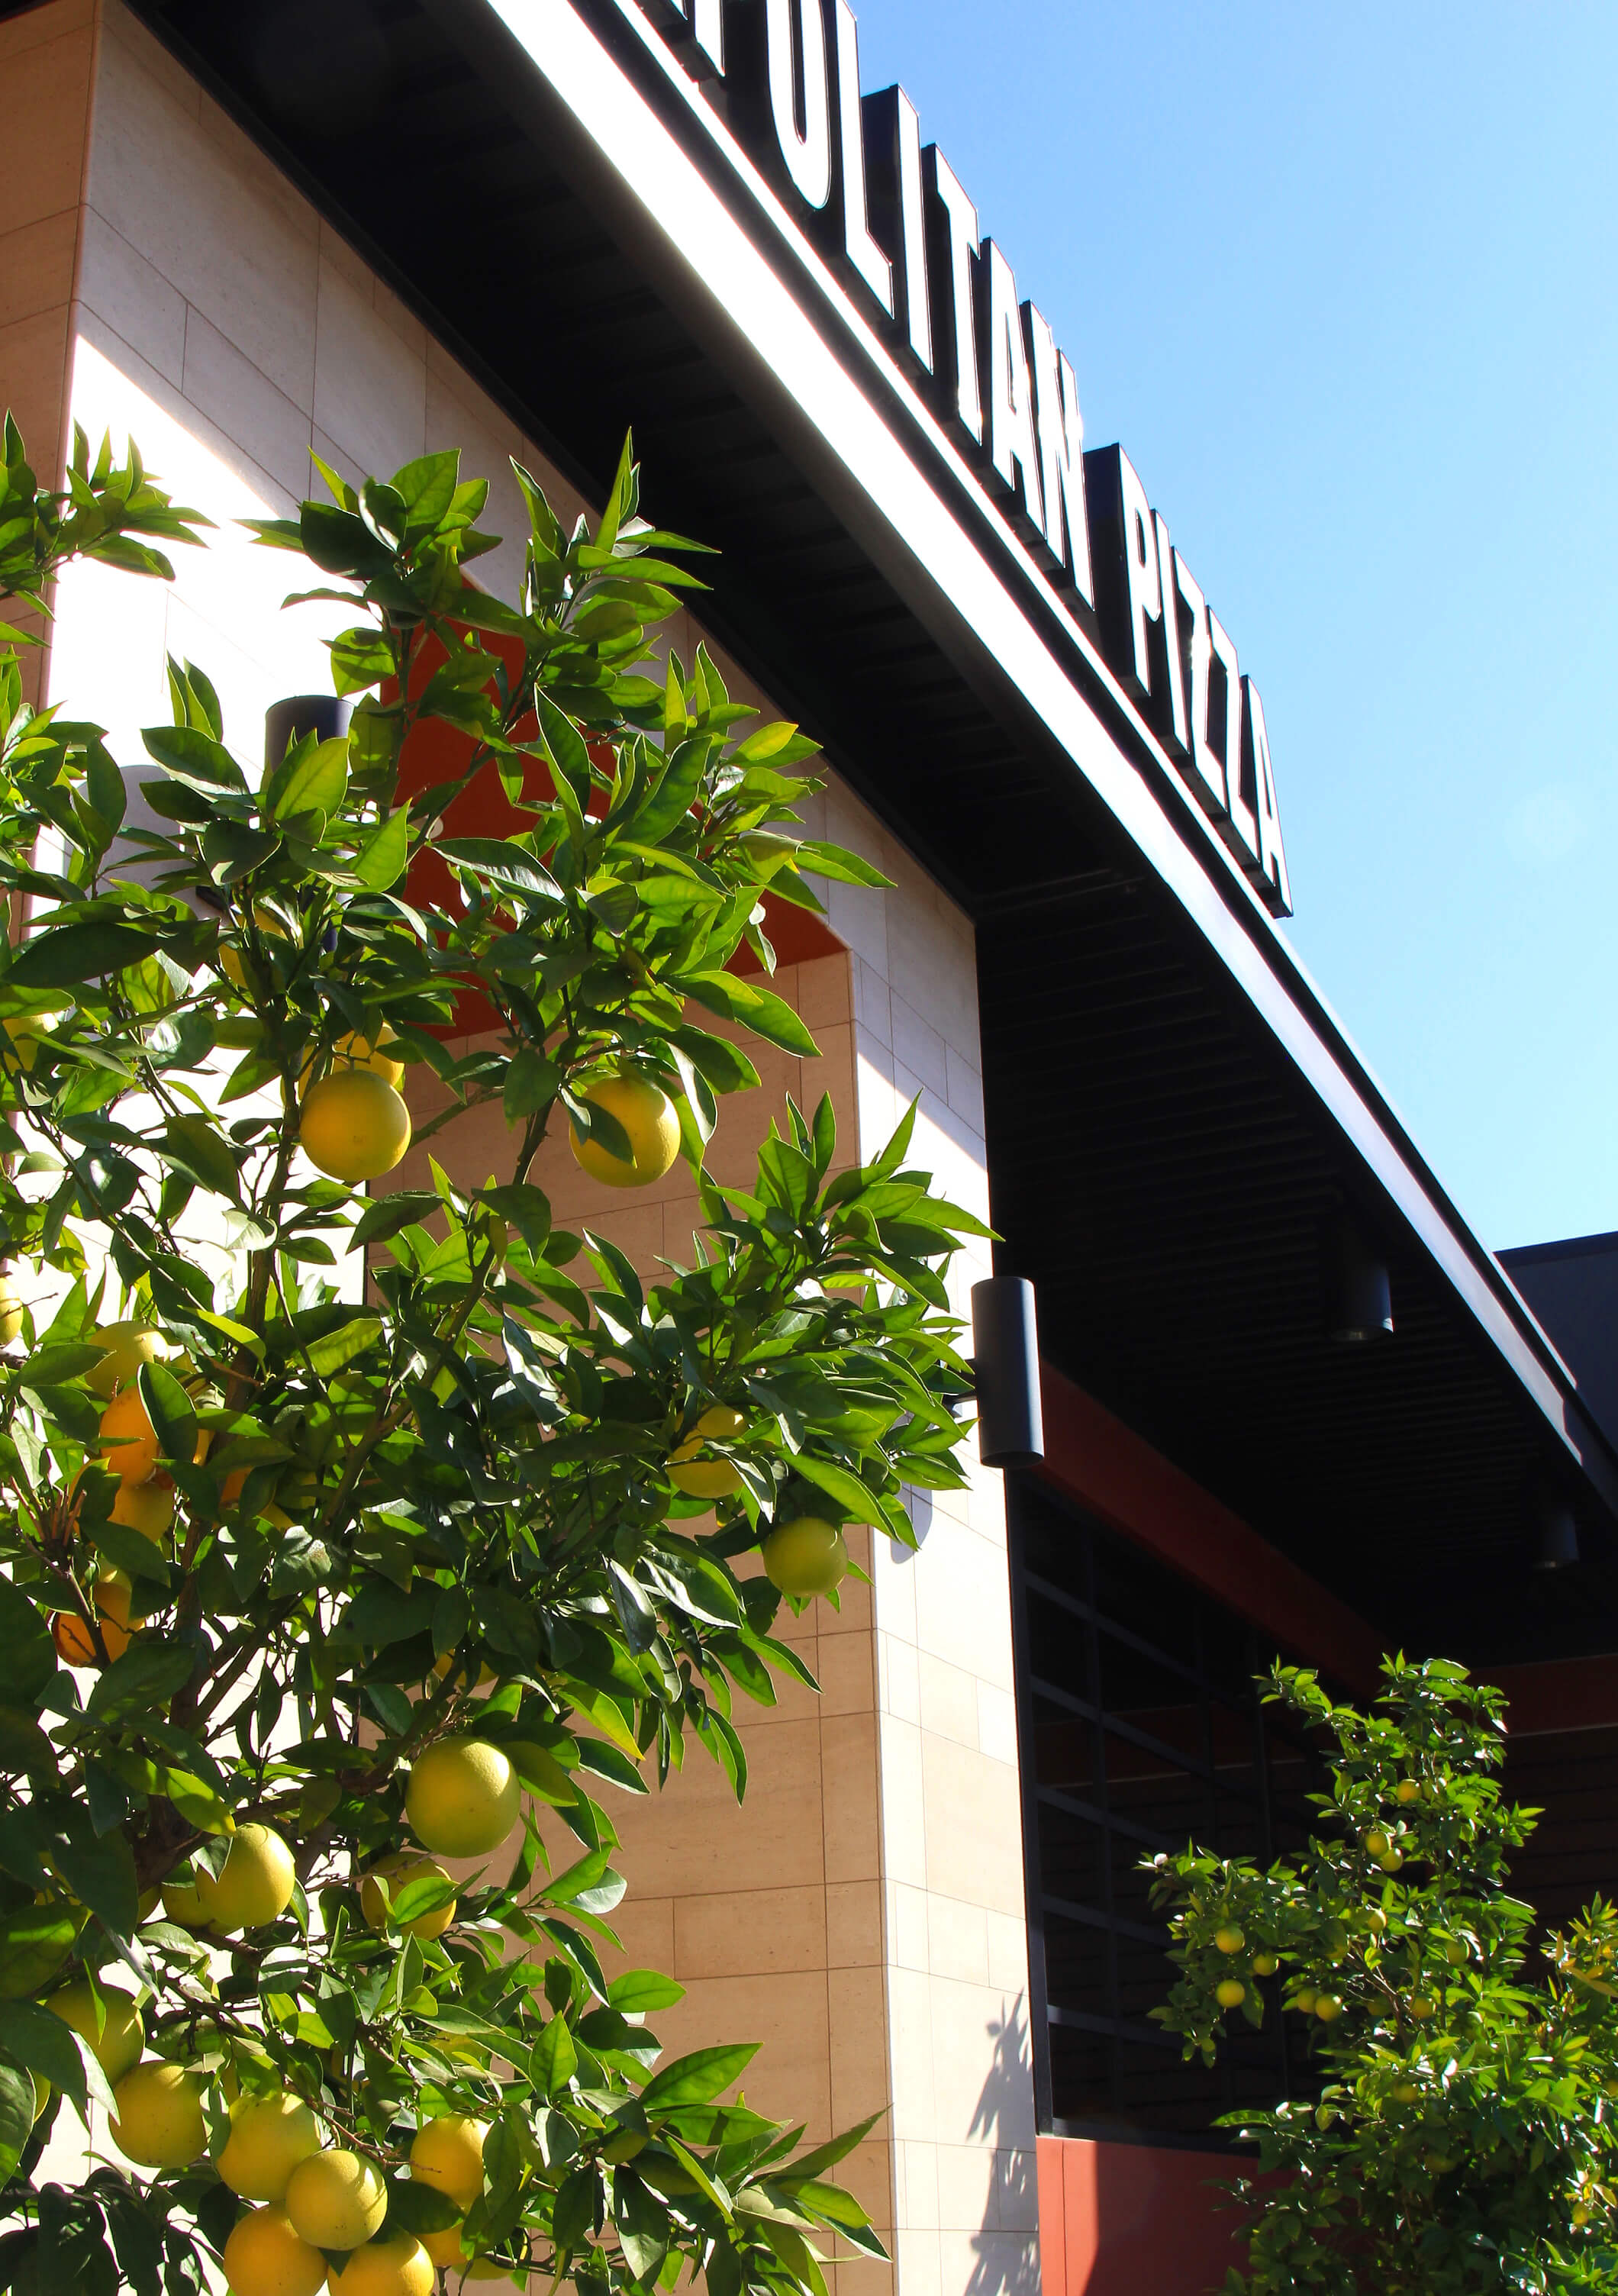 Mature craned-in fruitless Olive trees with a Feather Grass foreground creates a serene and inviting approach to the restaurant.  Horizontally running Ipe wood on the exterior walls created a modern yet warm backdrop.